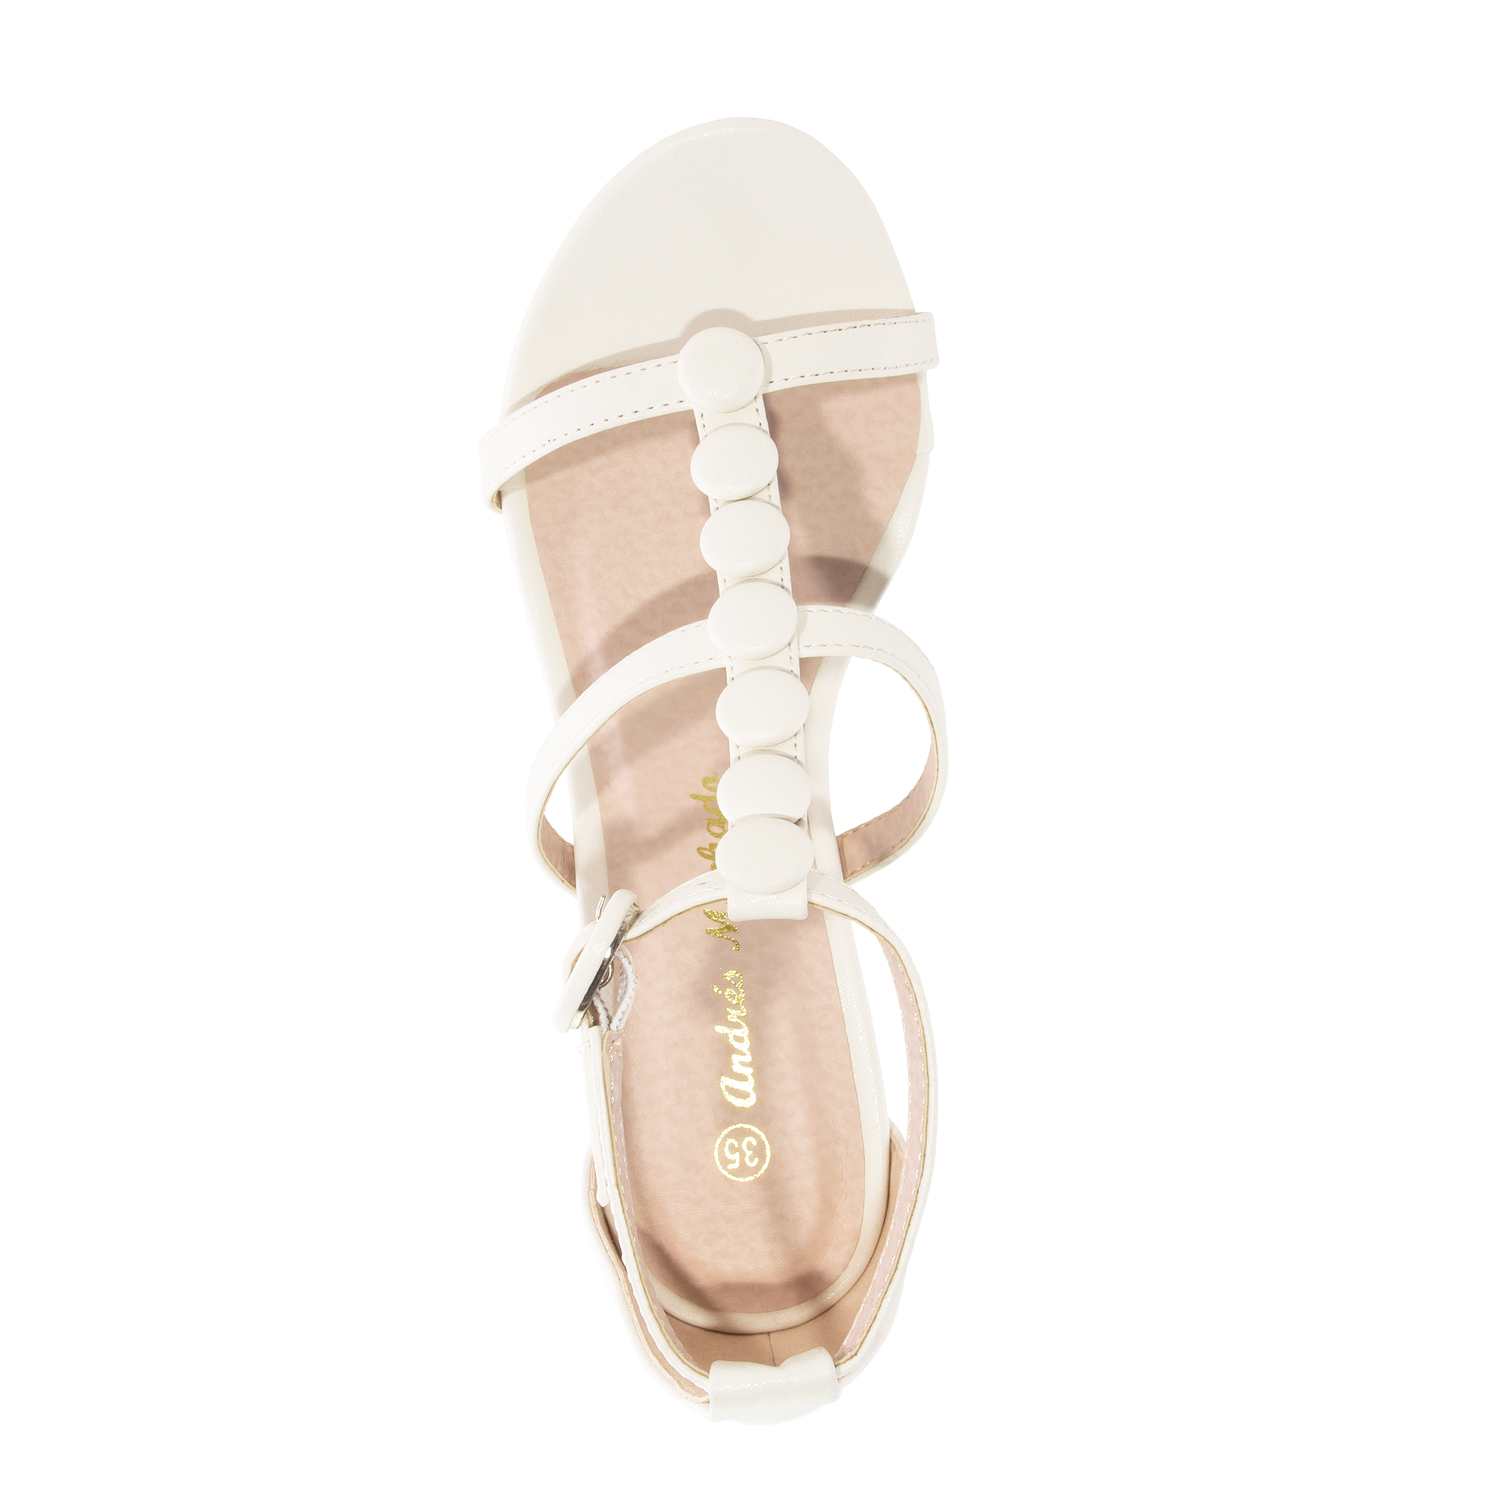 Sandalias T-Bar en Soft de color Beige.